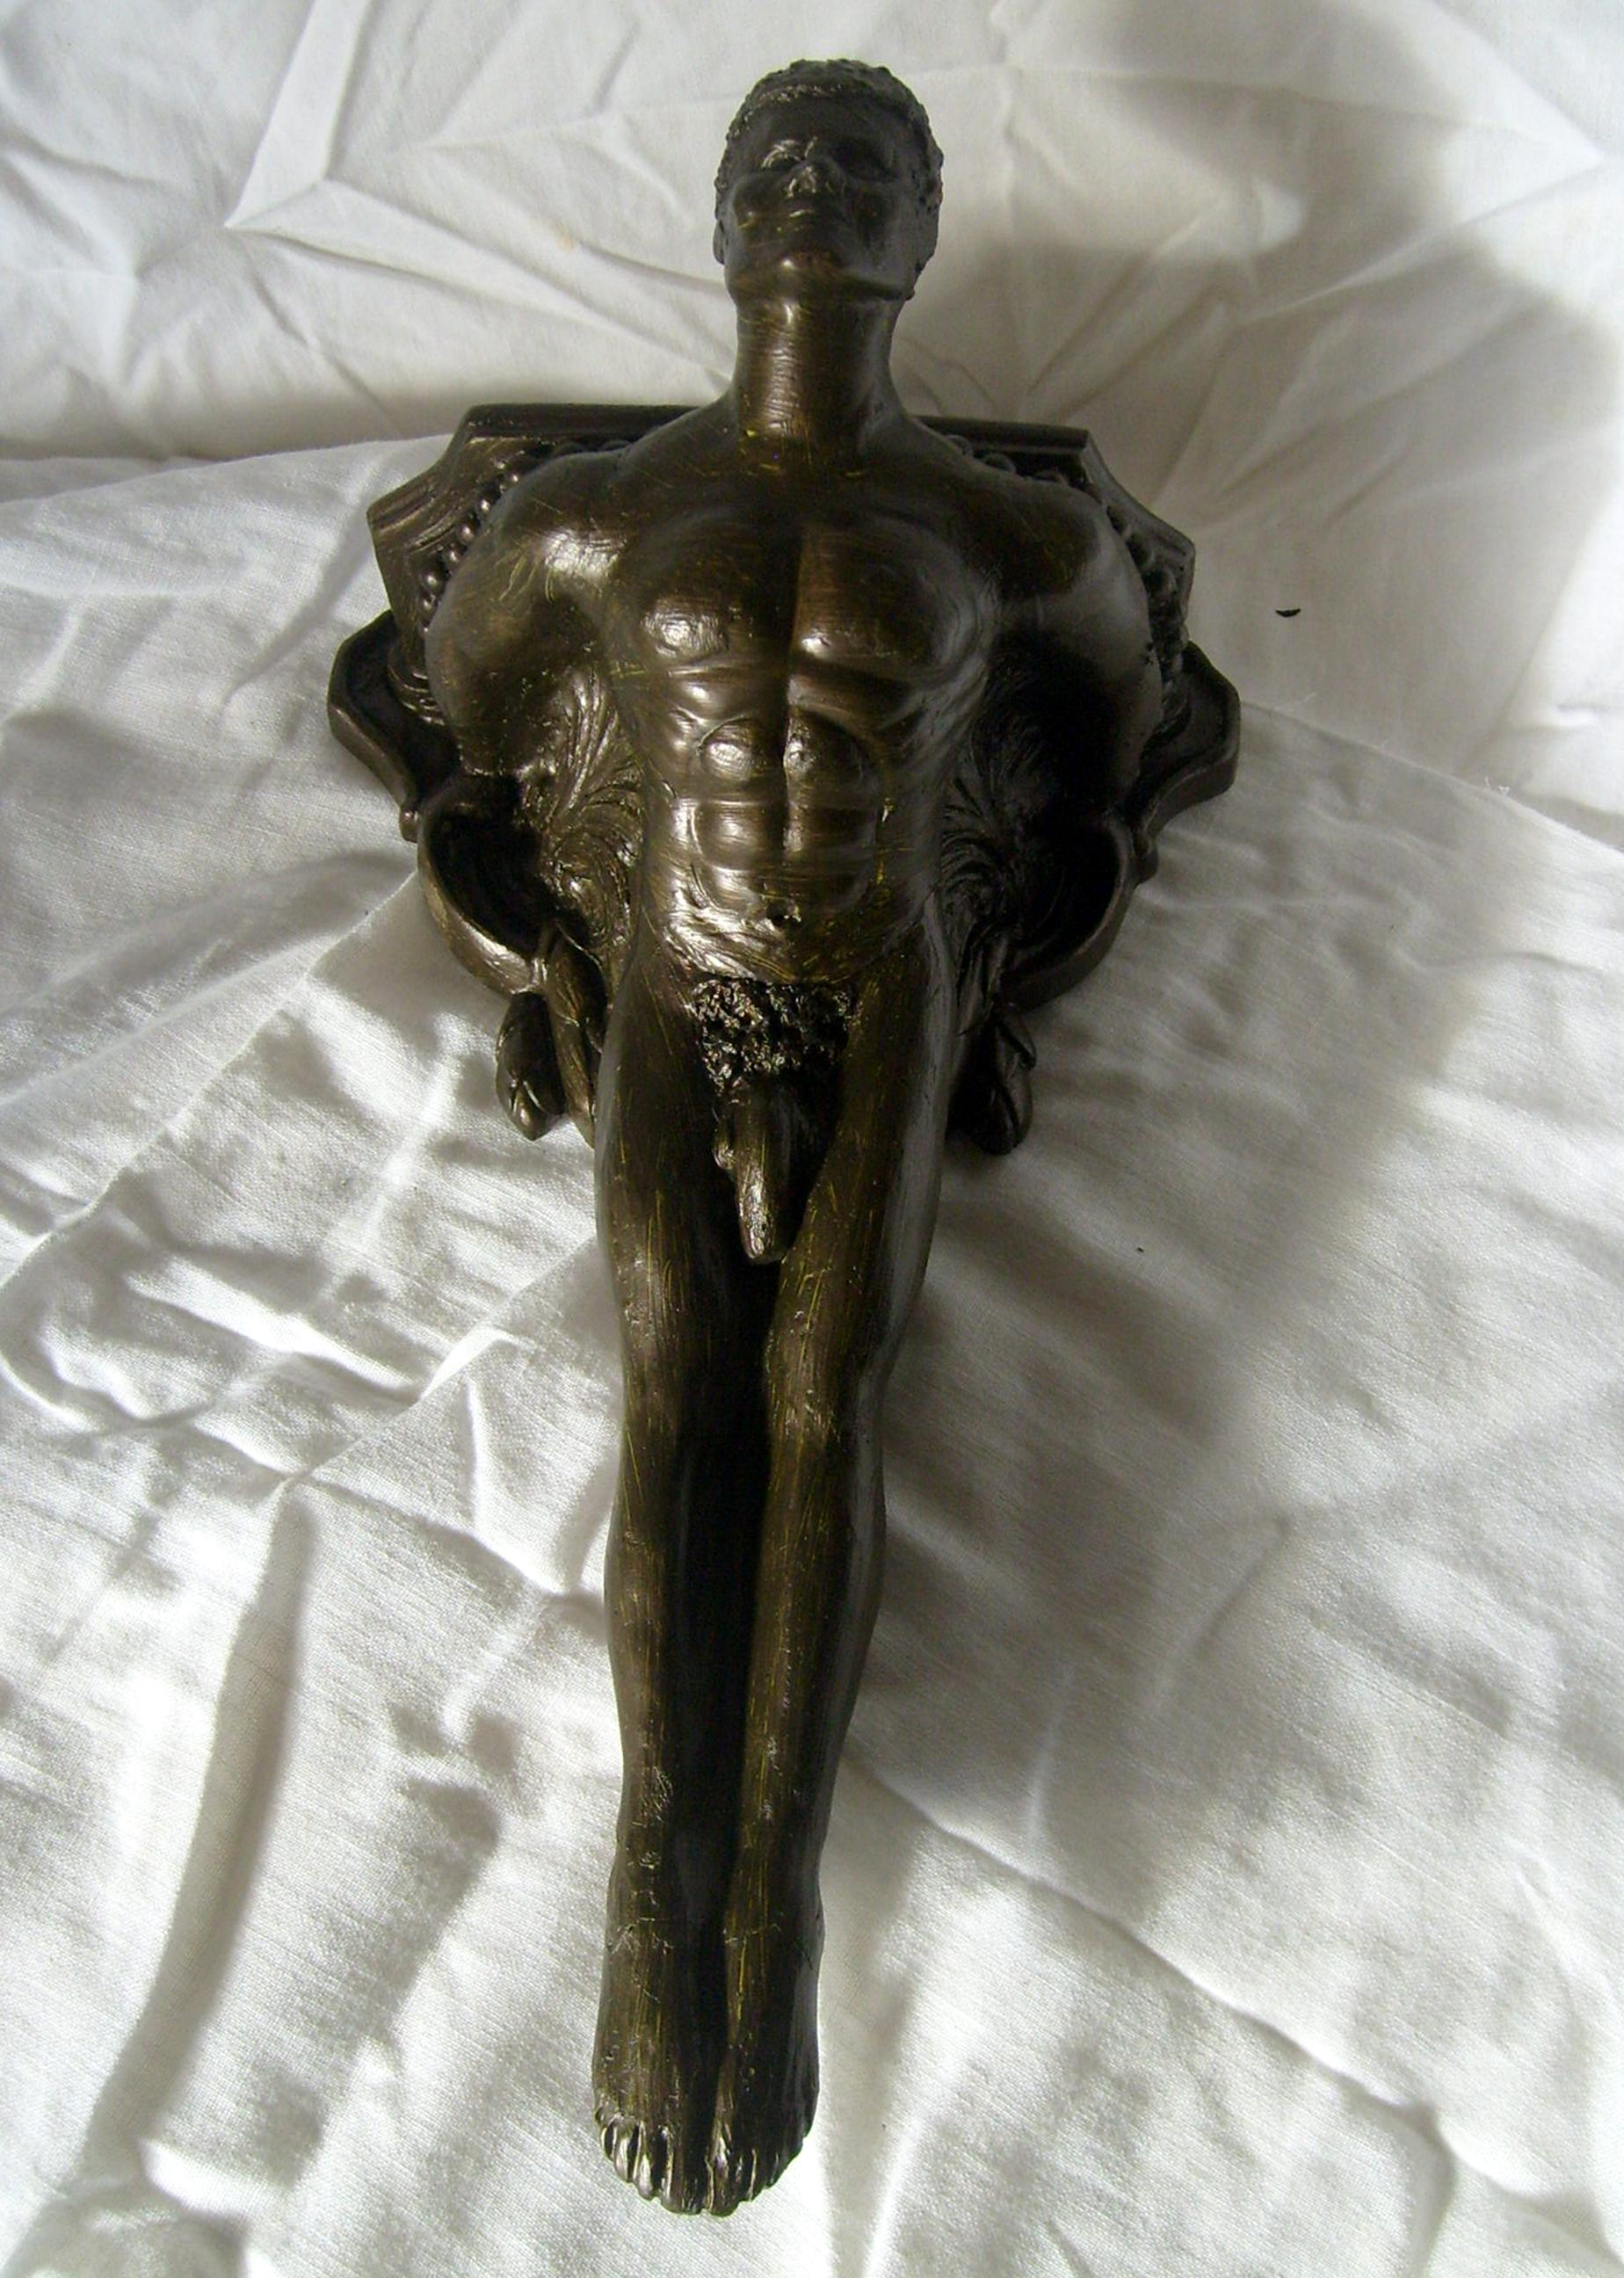 File:Male Nude Corbel Sculpture by Lidbury.jpg